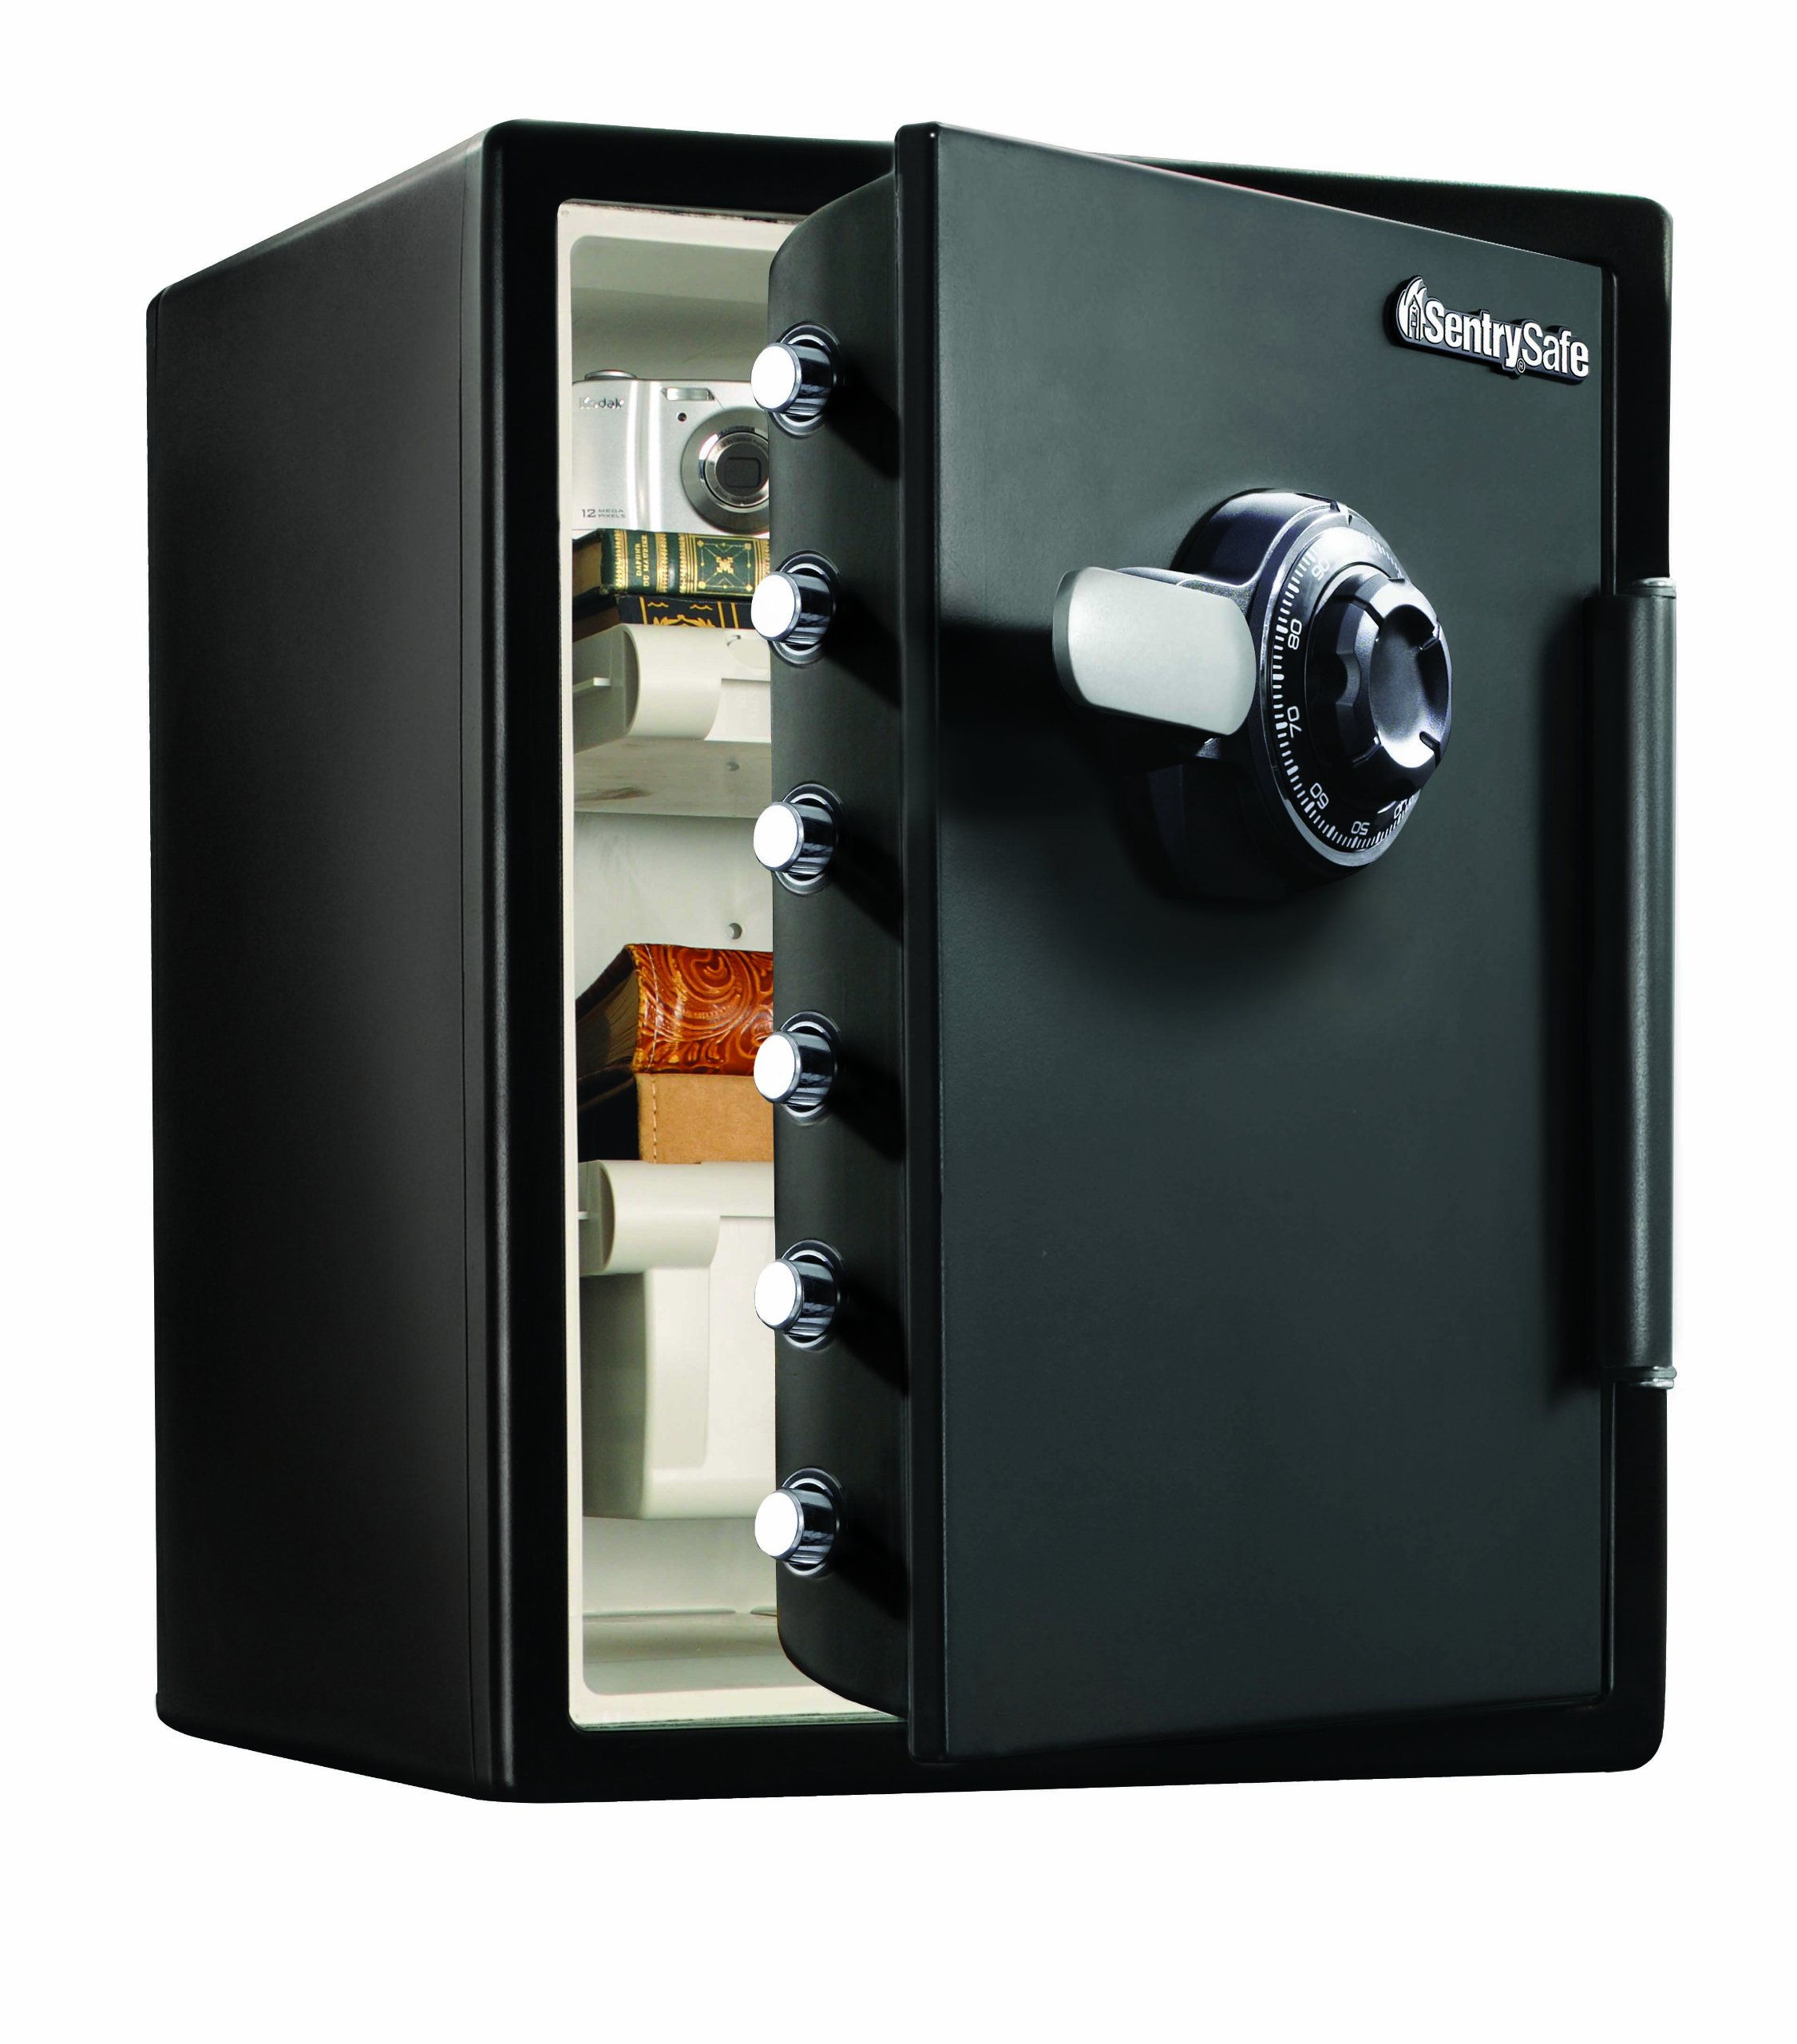 SentrySafe Fire and Water Safe, XX Large Combination Safe, 2.05 Cubic Feet, SFW205CWB